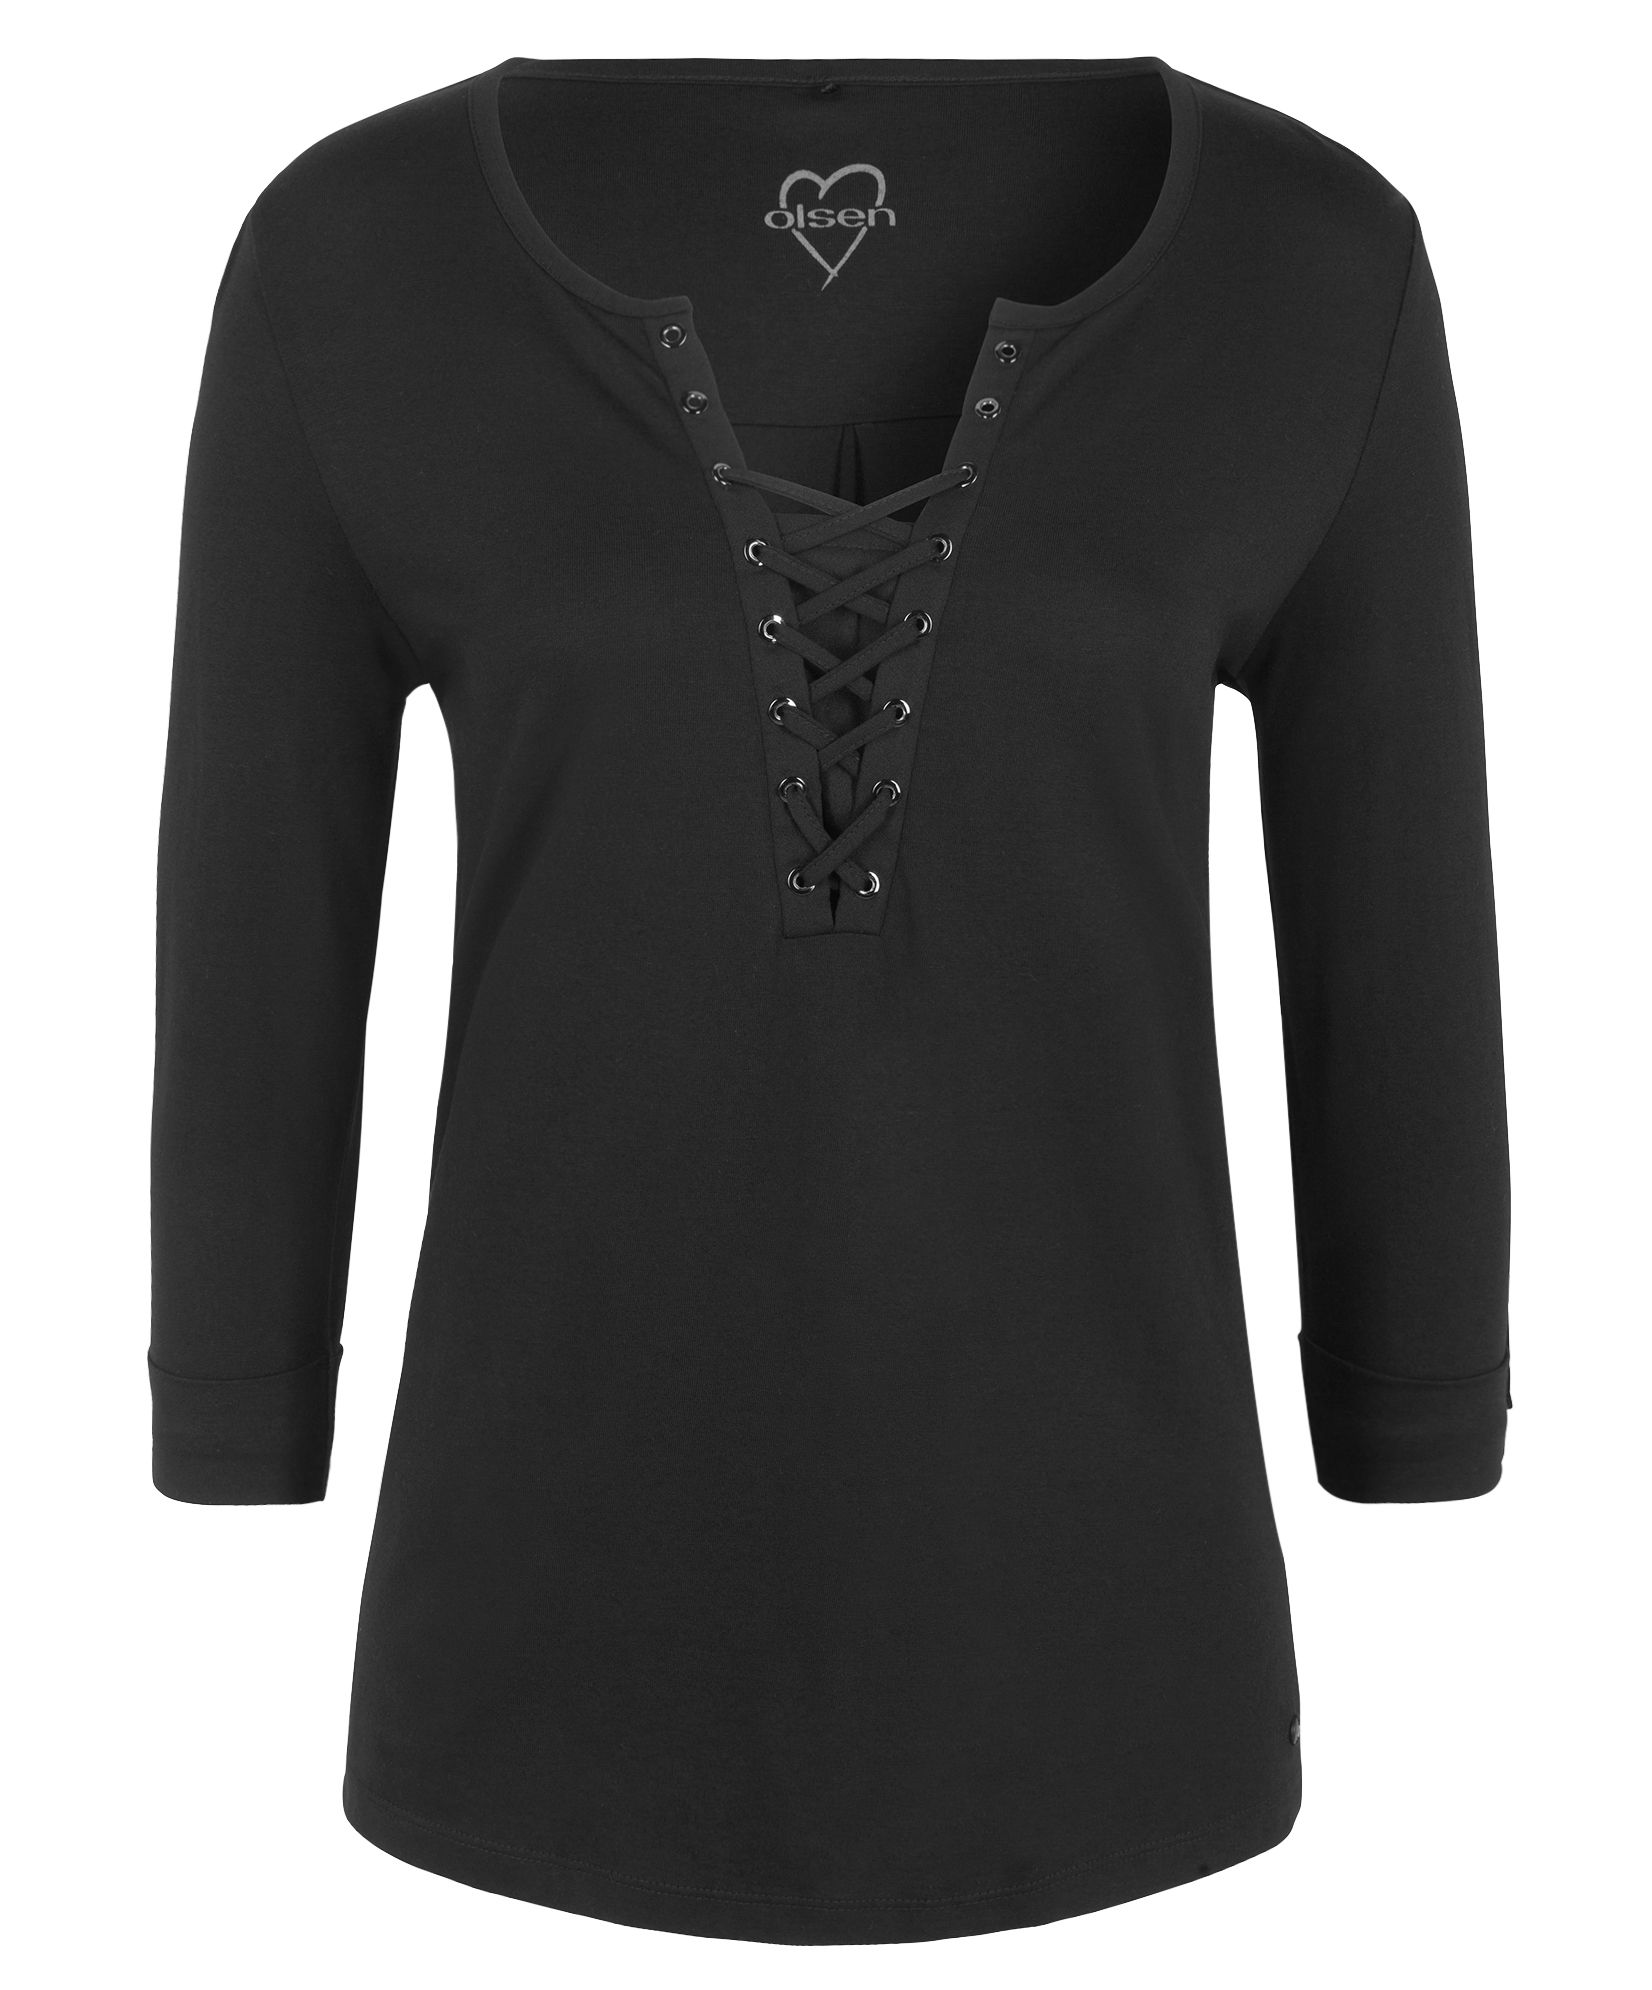 Olsen Lace-up top, Black